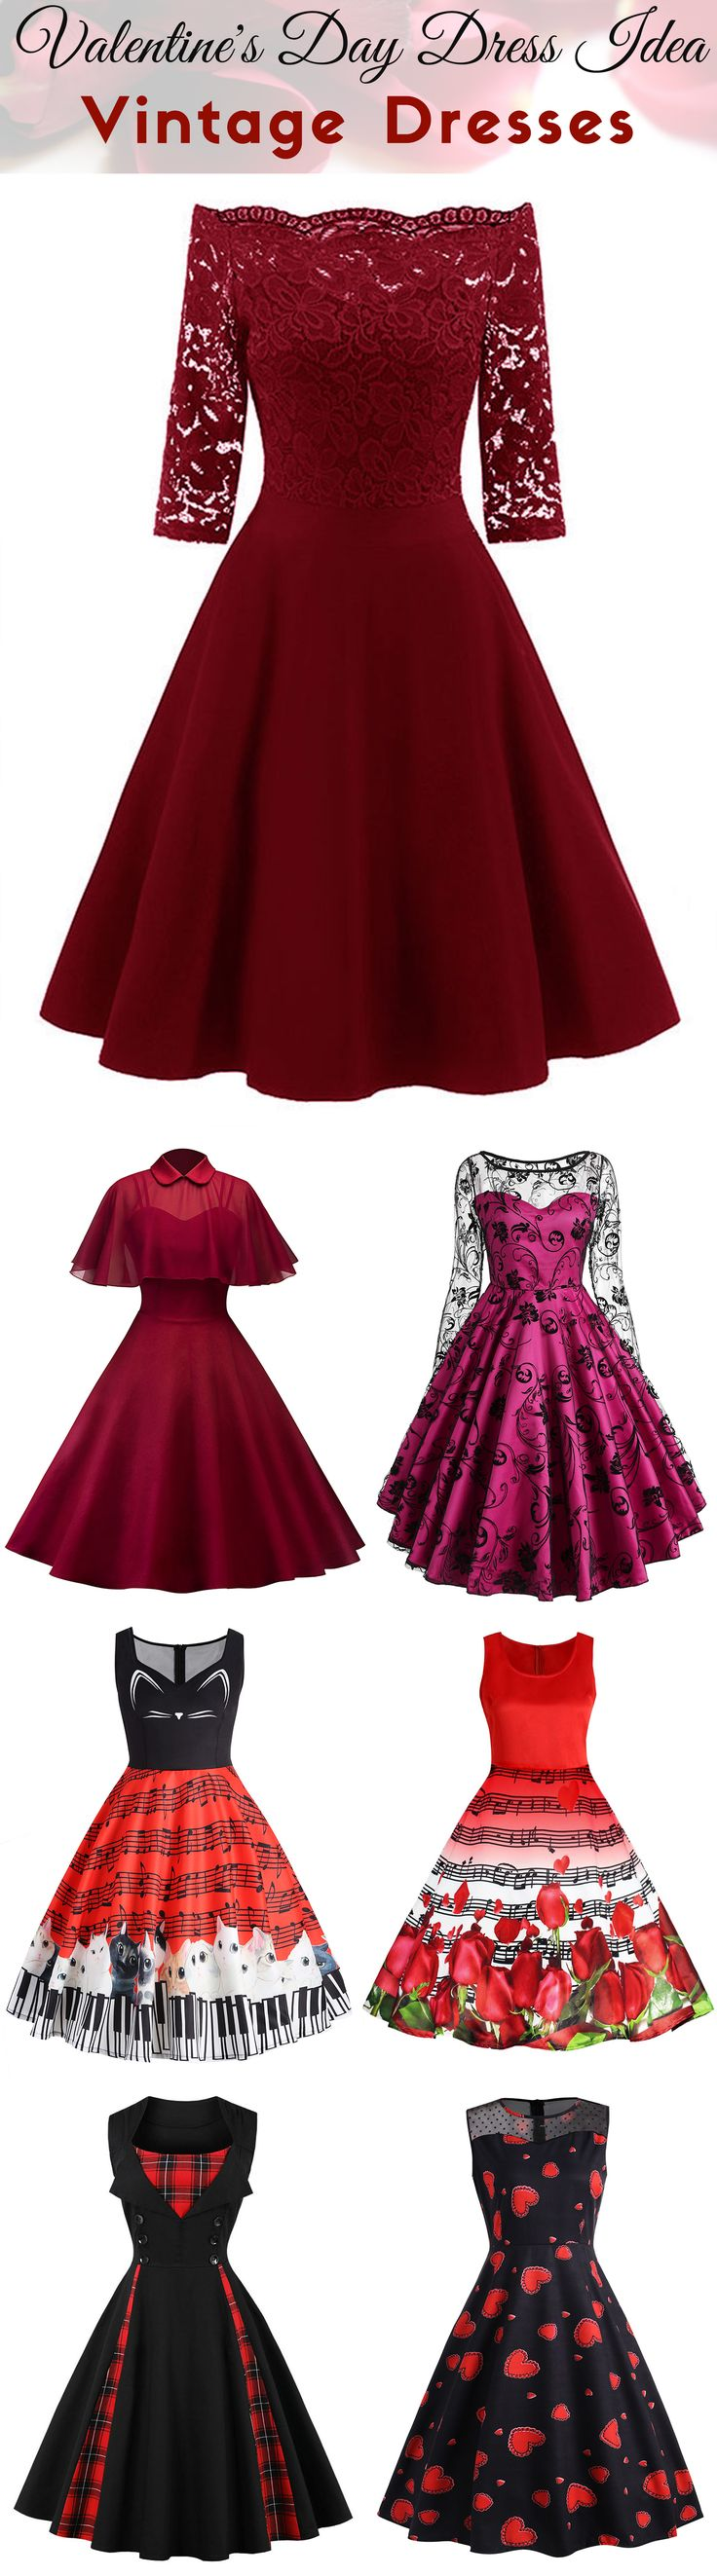 Up to 56% off + Free Shipping | Valentine's Day Dress Idea | #valentinesday #womenfashion #dress